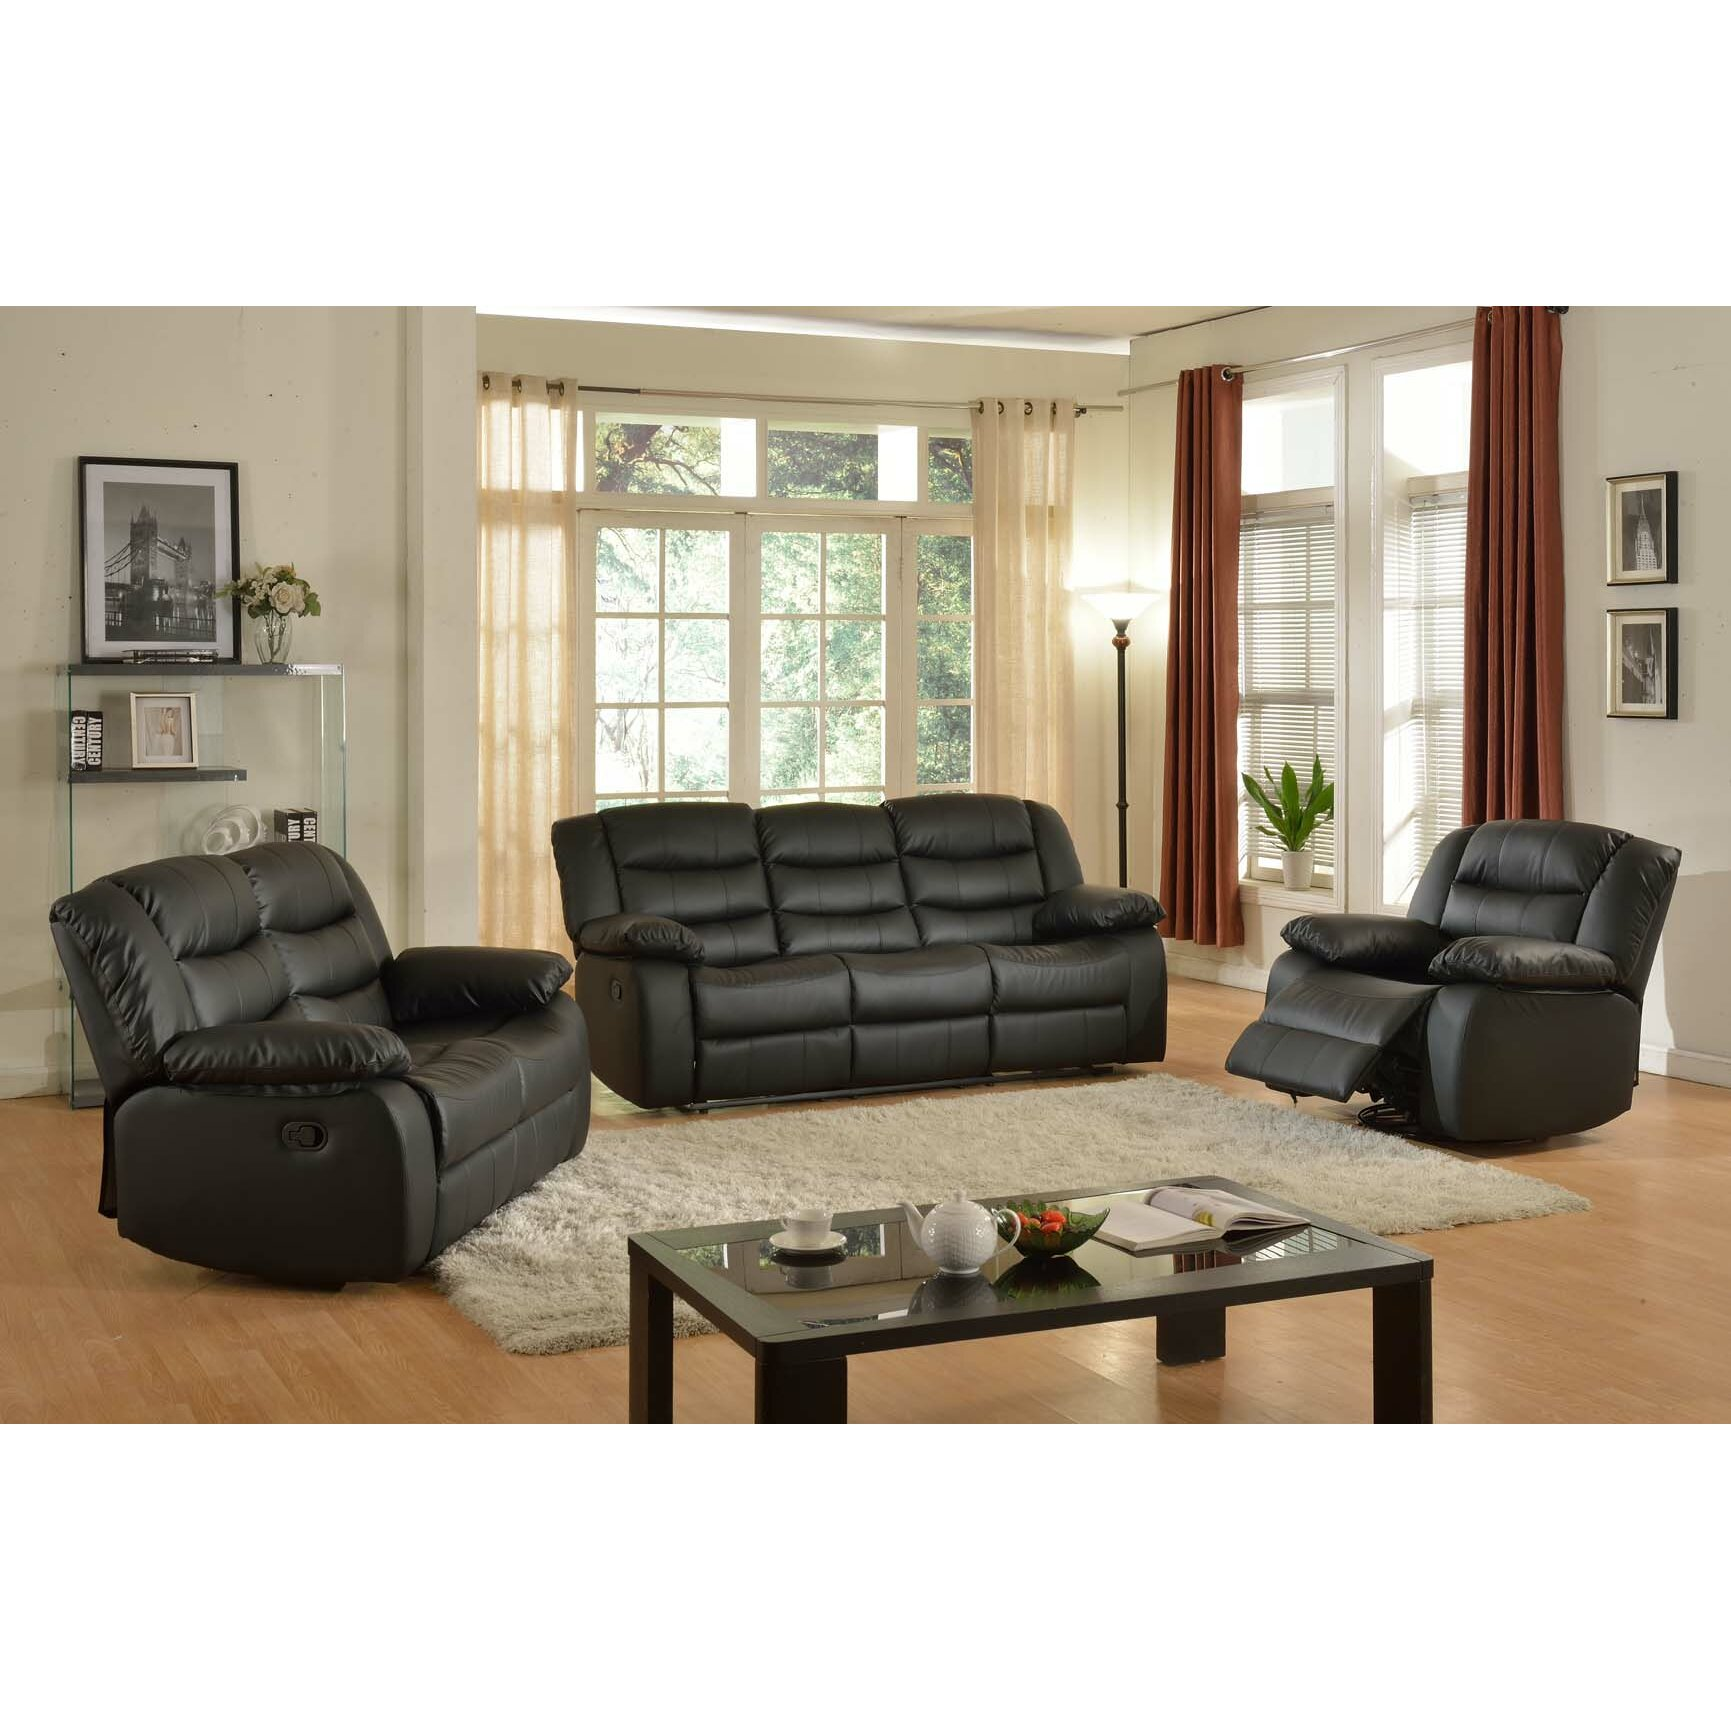 Living room set deals vision sofa set diego gray living for Living room set deals